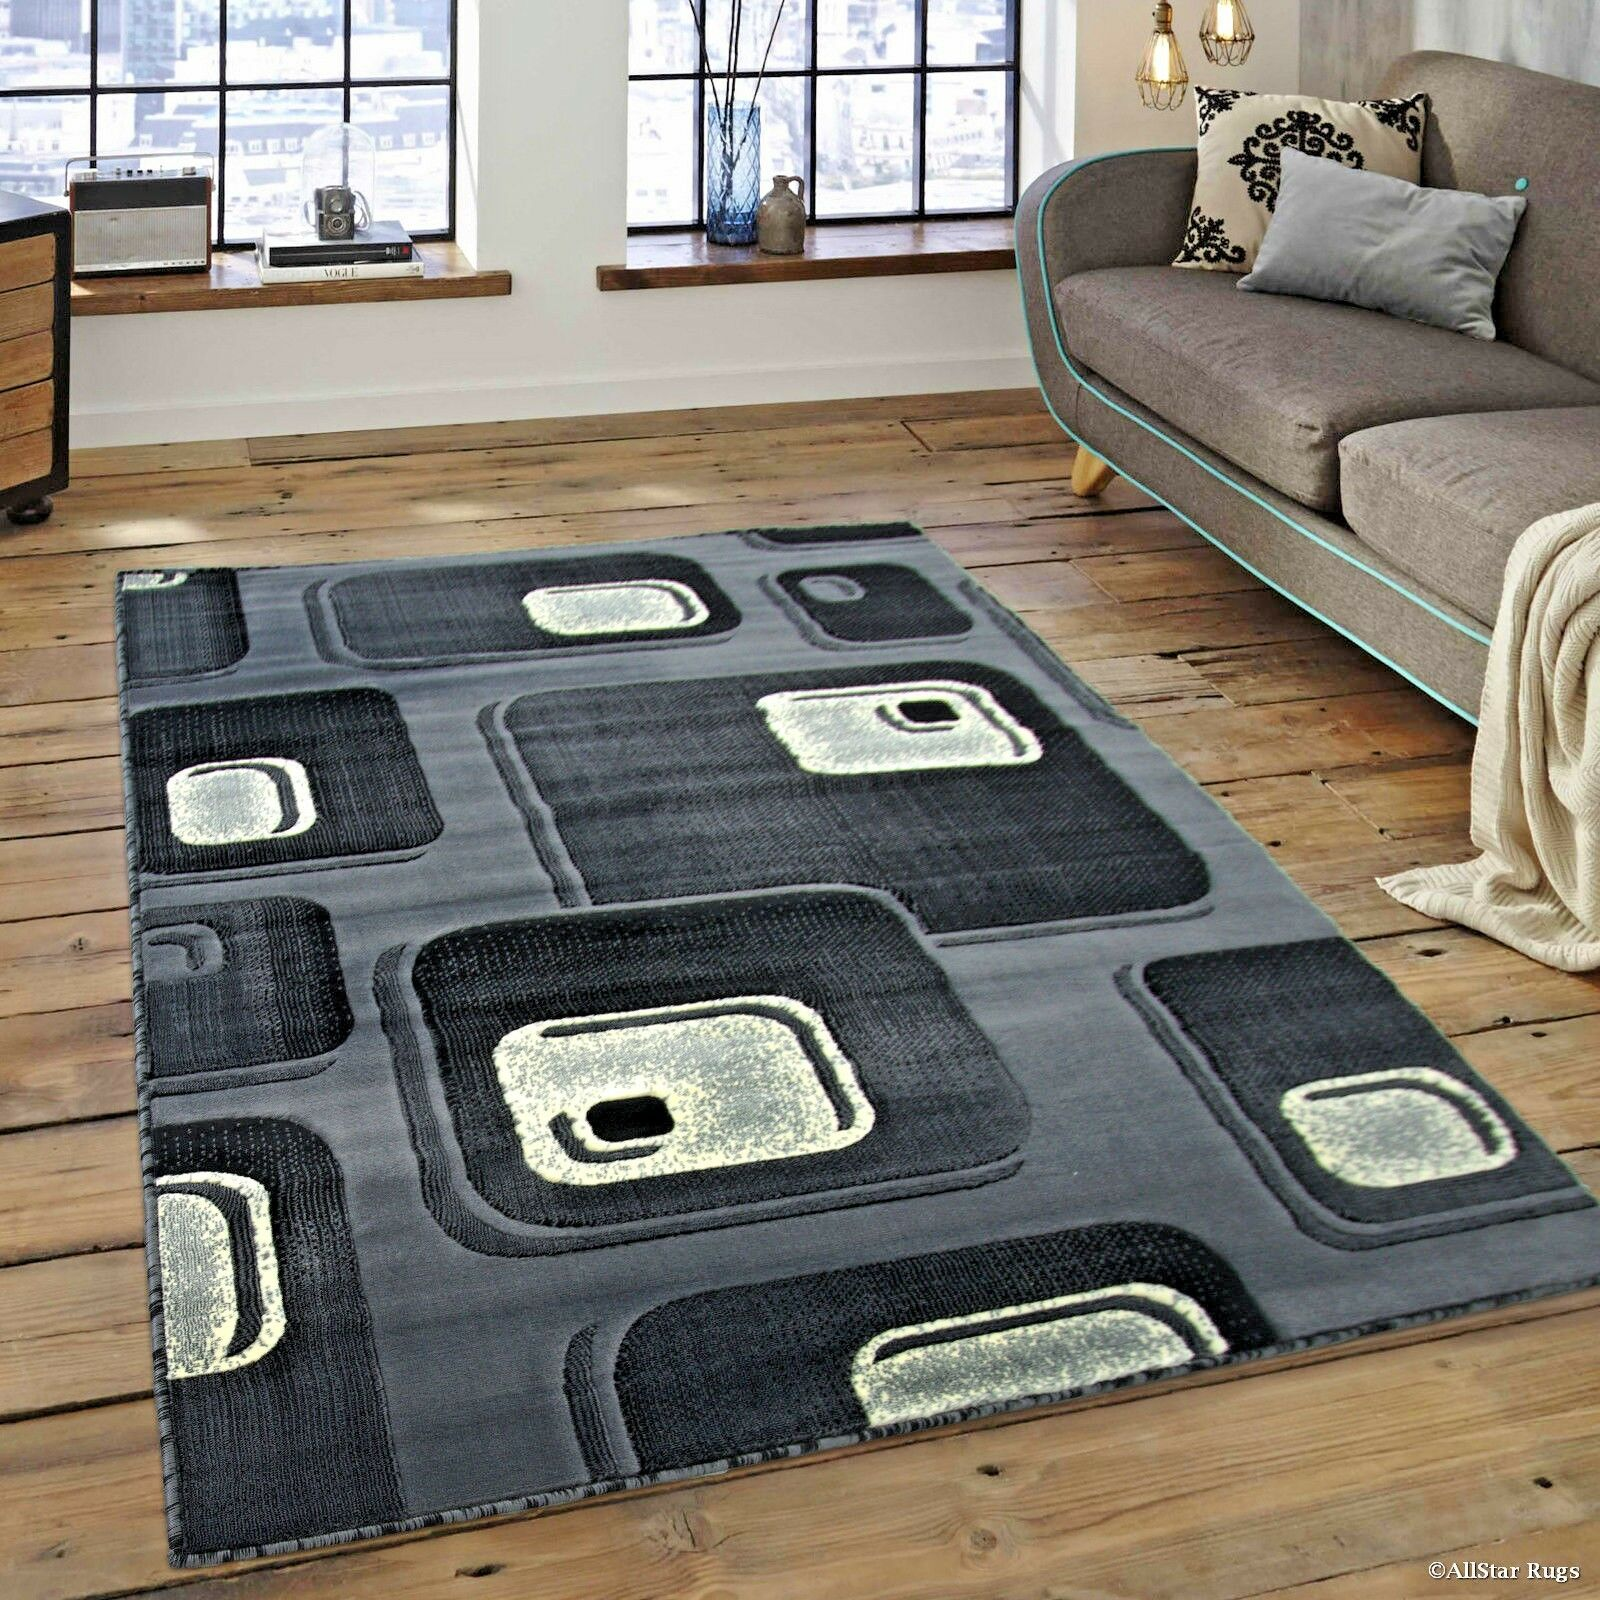 Details About Rugs Area Rugs Carpets 8x10 Area Rug Modern Big Grey Large Room Floor Gray Rugs